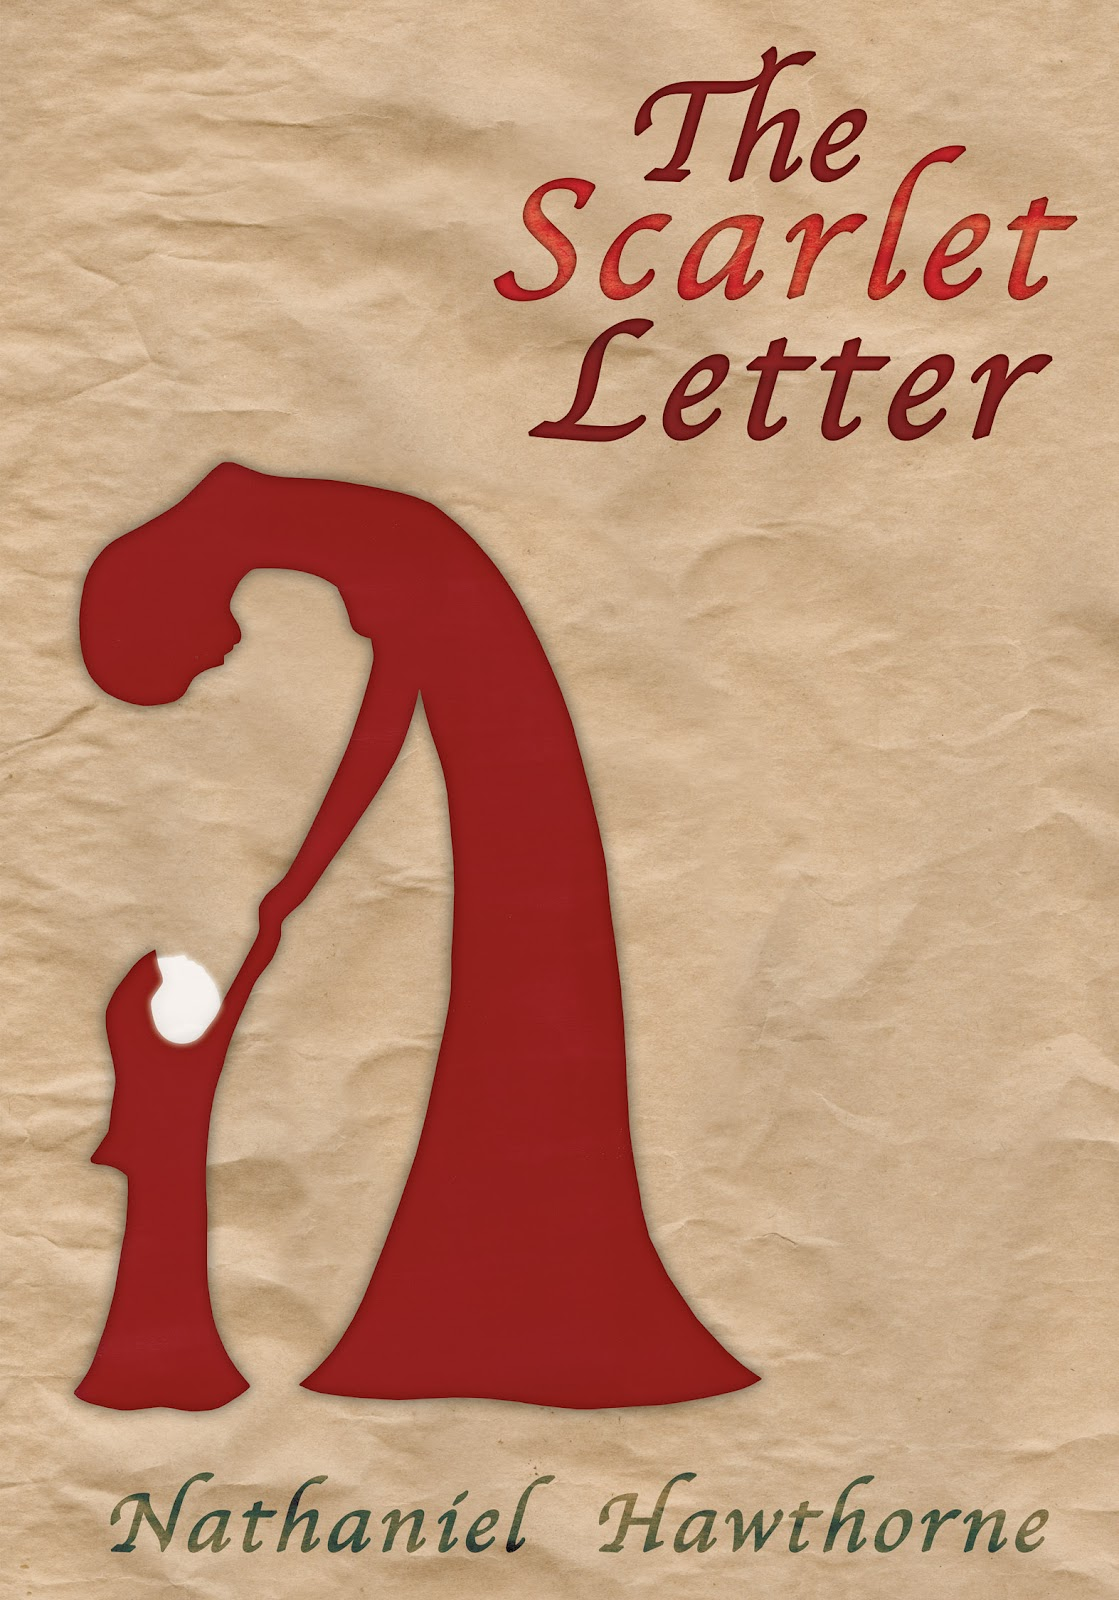 a search for salvation in the scarlet letter by nathaniel hawthorne A reconsideration of nathaniel hawthorne's the scarlet letter abstract this paper aims at offering an in-depth analysis of both the 1926 and the 1995 movie adaptations of nathaniel hawthorne's 1850 novel the scarlet letter.